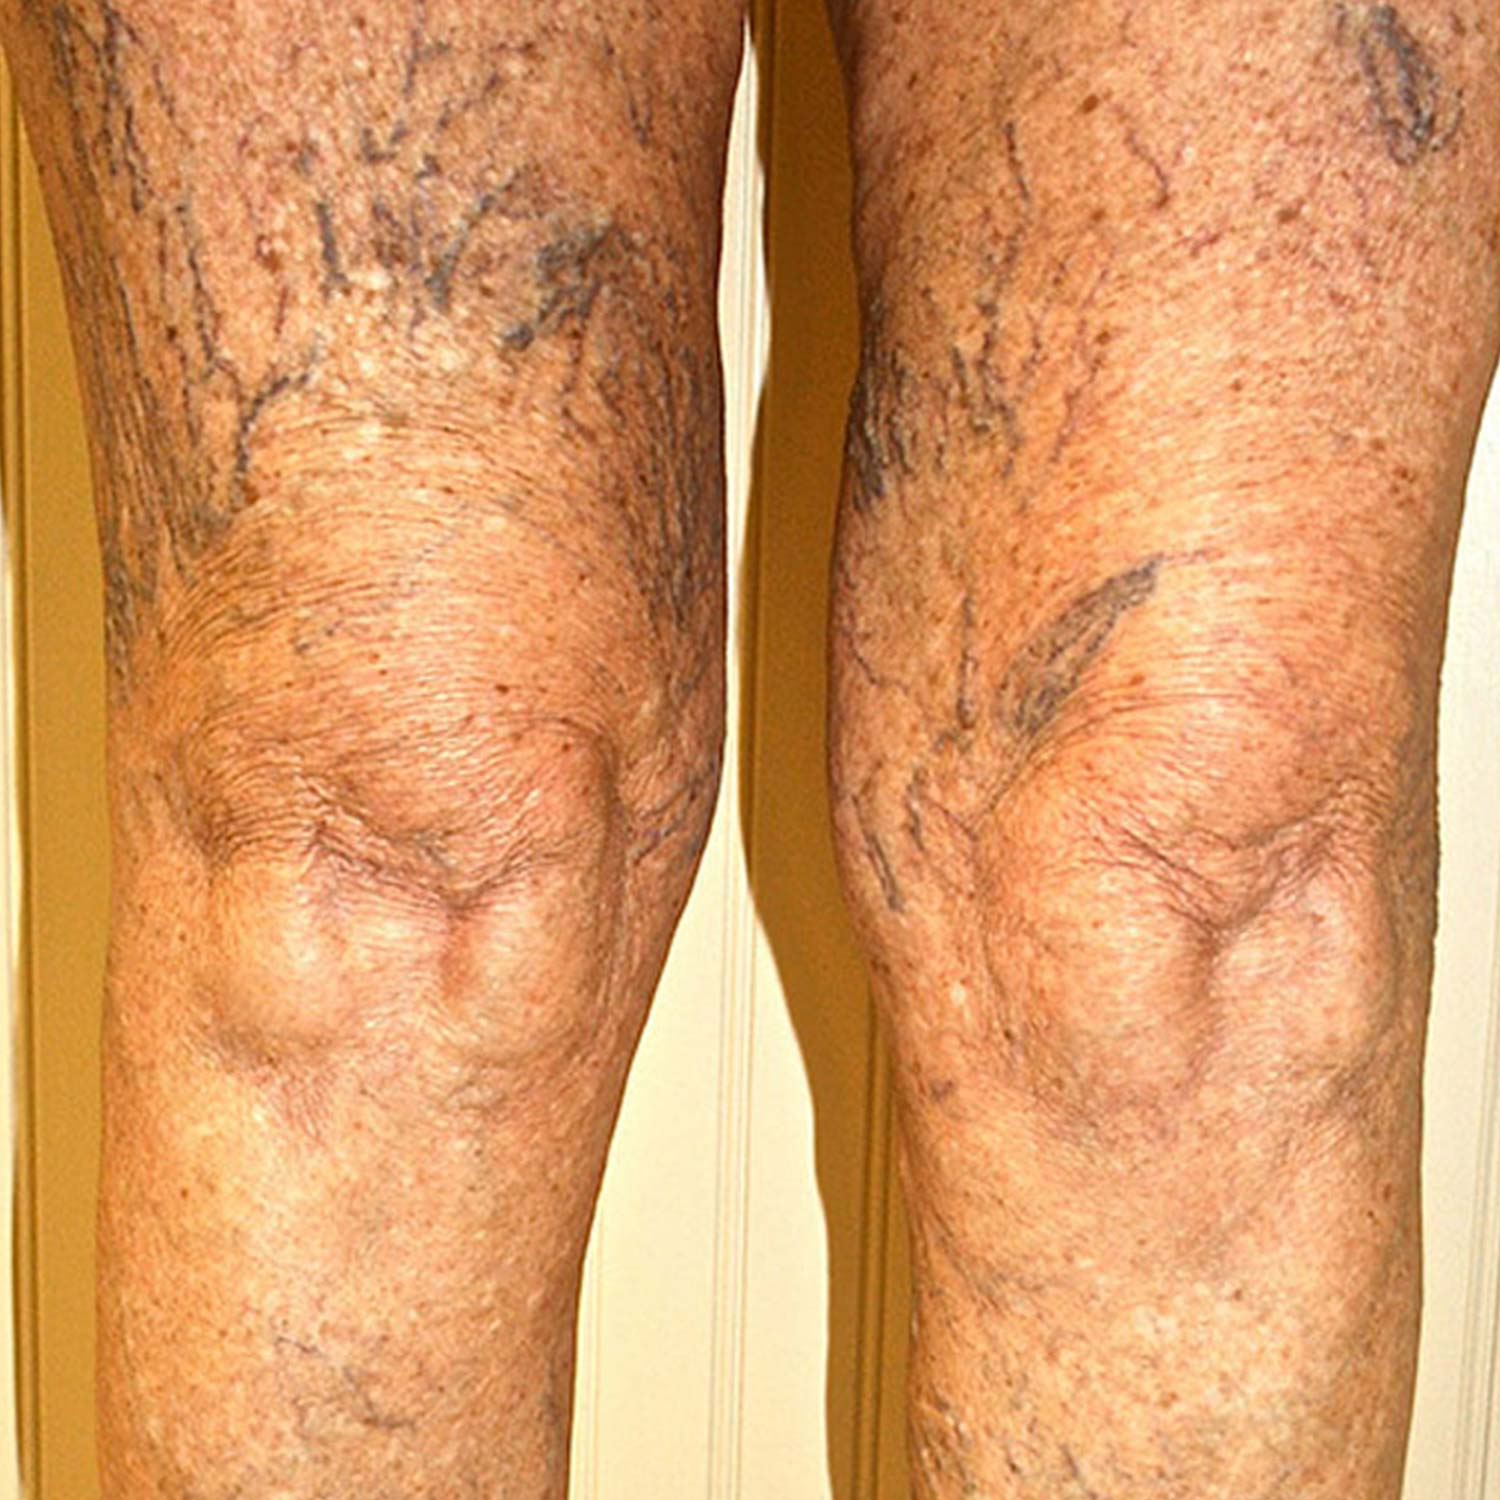 Spider veins on a patients legs before surgery.